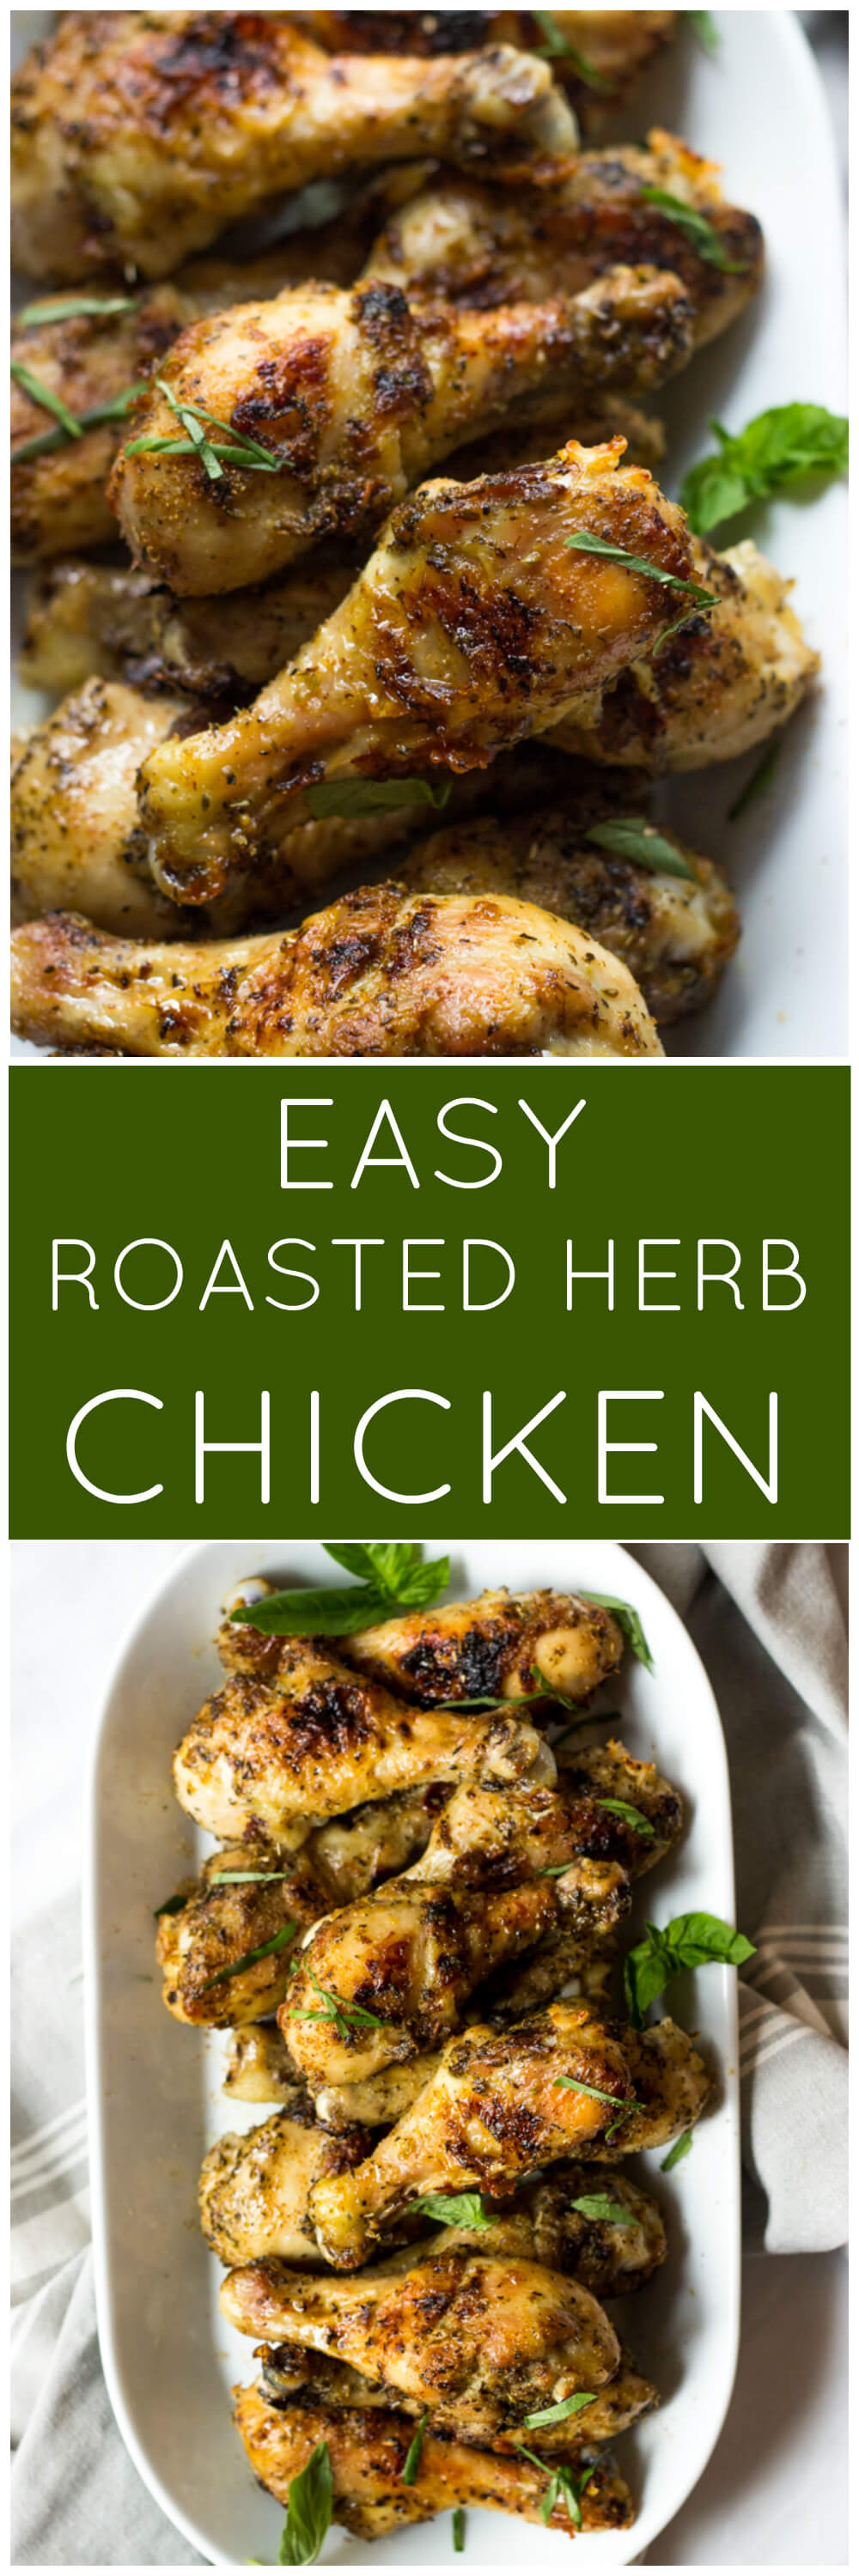 02b09dfc6f0b Easy Roasted Herb Chicken - the most delicious roasted chicken you will  ever have. Super